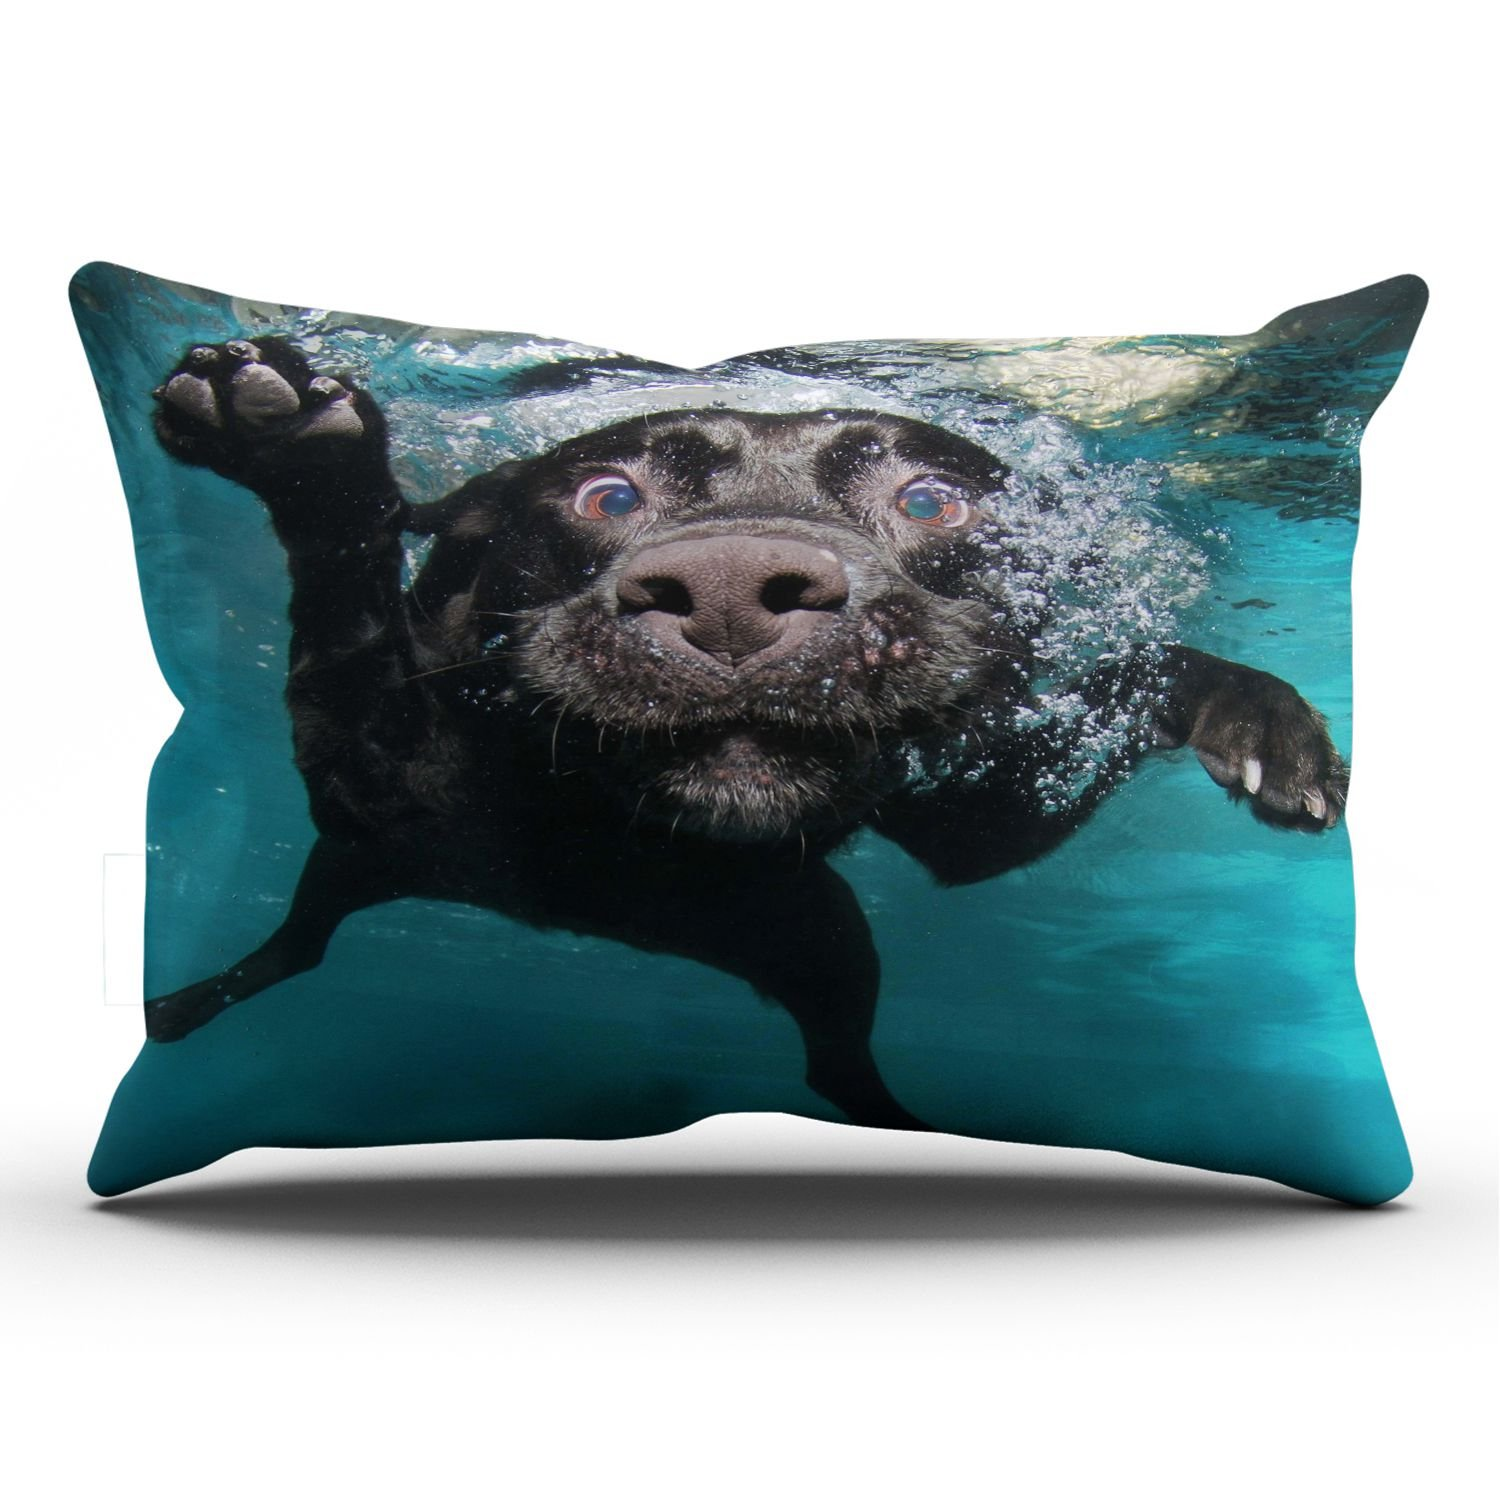 ZeDae Animal Dog Dog Water Underwater Black Labrador Personalized Pillowcases Beauty Decorative Pillow Case Cover 20x36 Inches Pillowcase One Sided